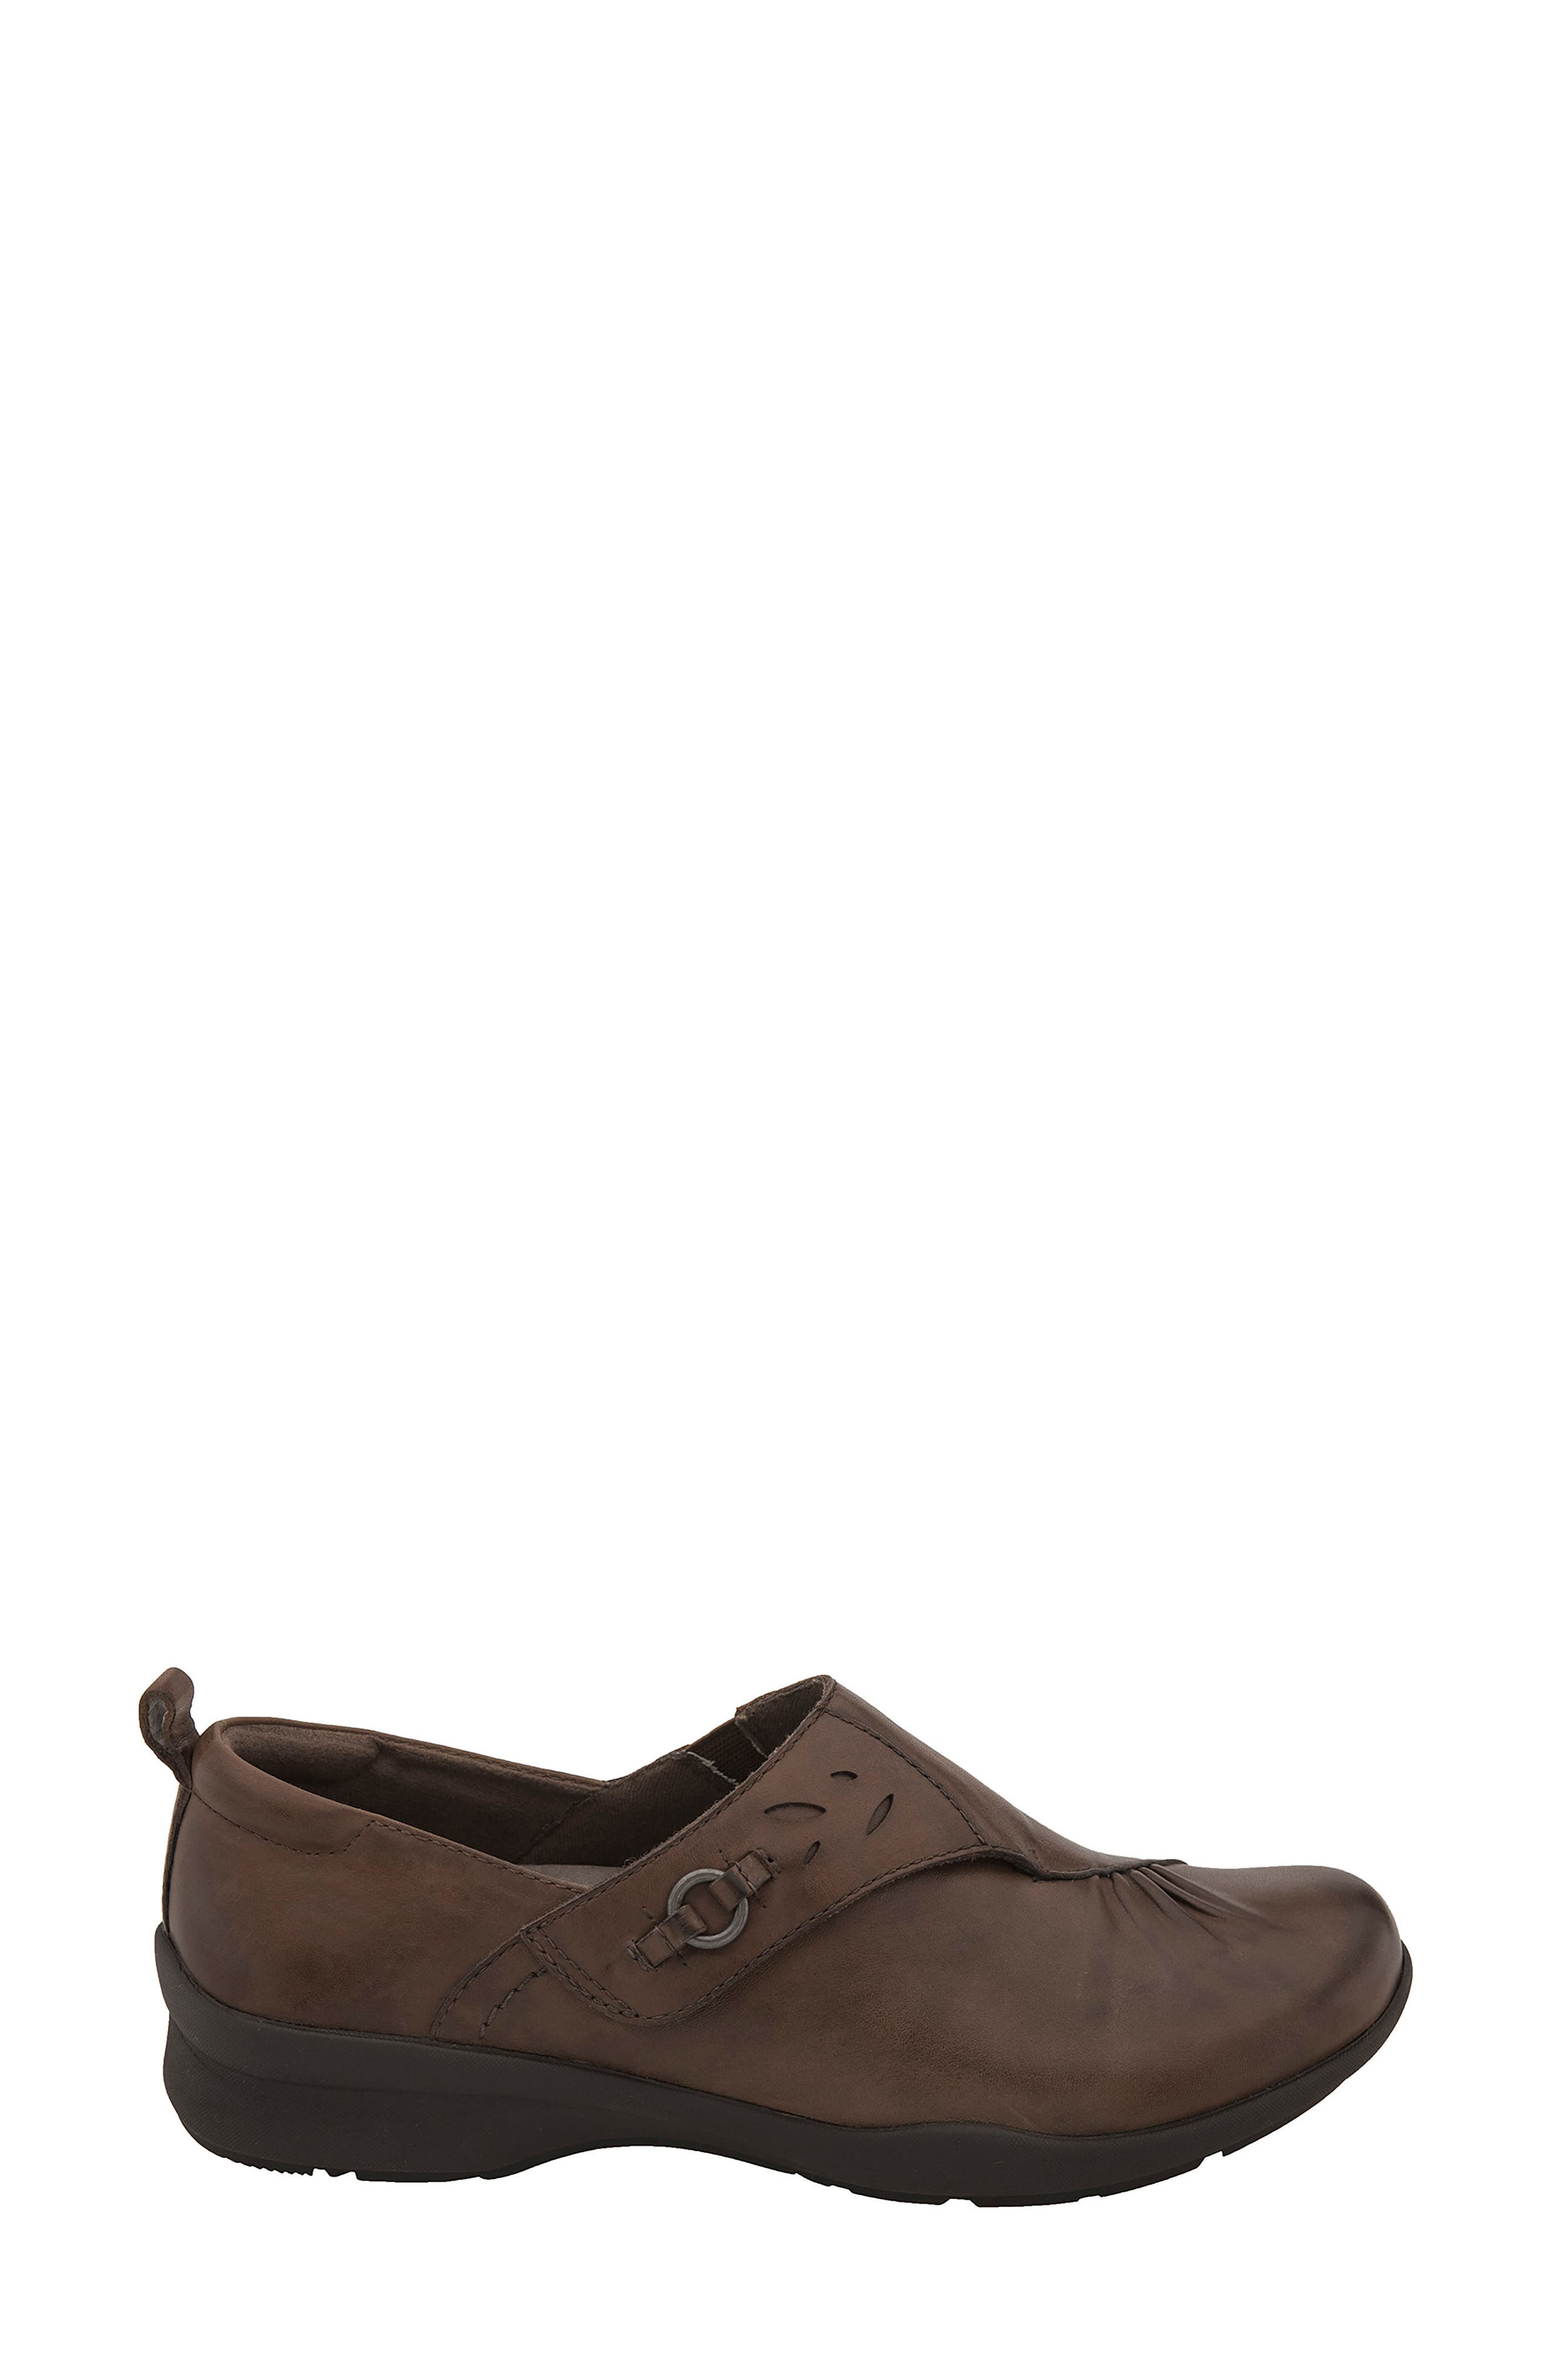 Amity Loafer,                             Alternate thumbnail 6, color,